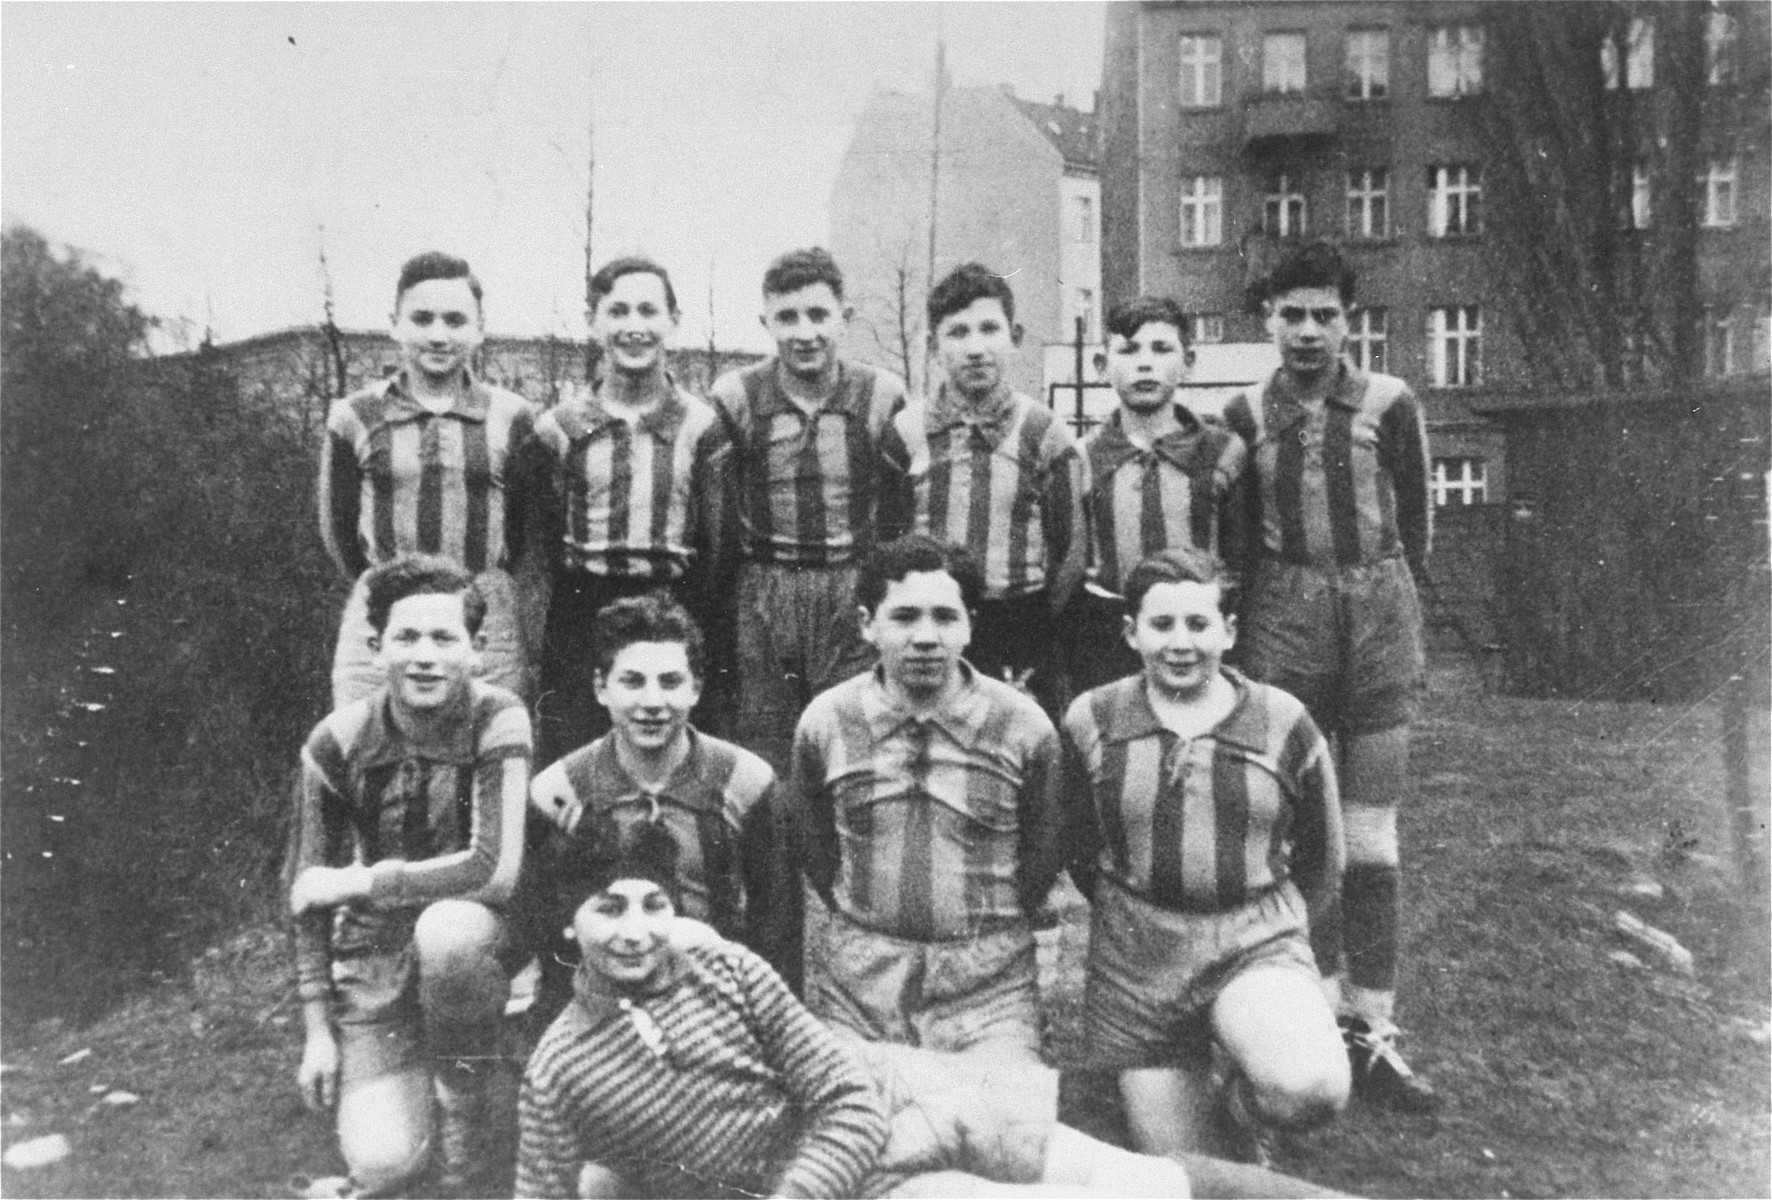 Group portrait of Jewish youth in a soccer team in Berlin.    Aron Sussmann (the captain) is standing third from the right,.